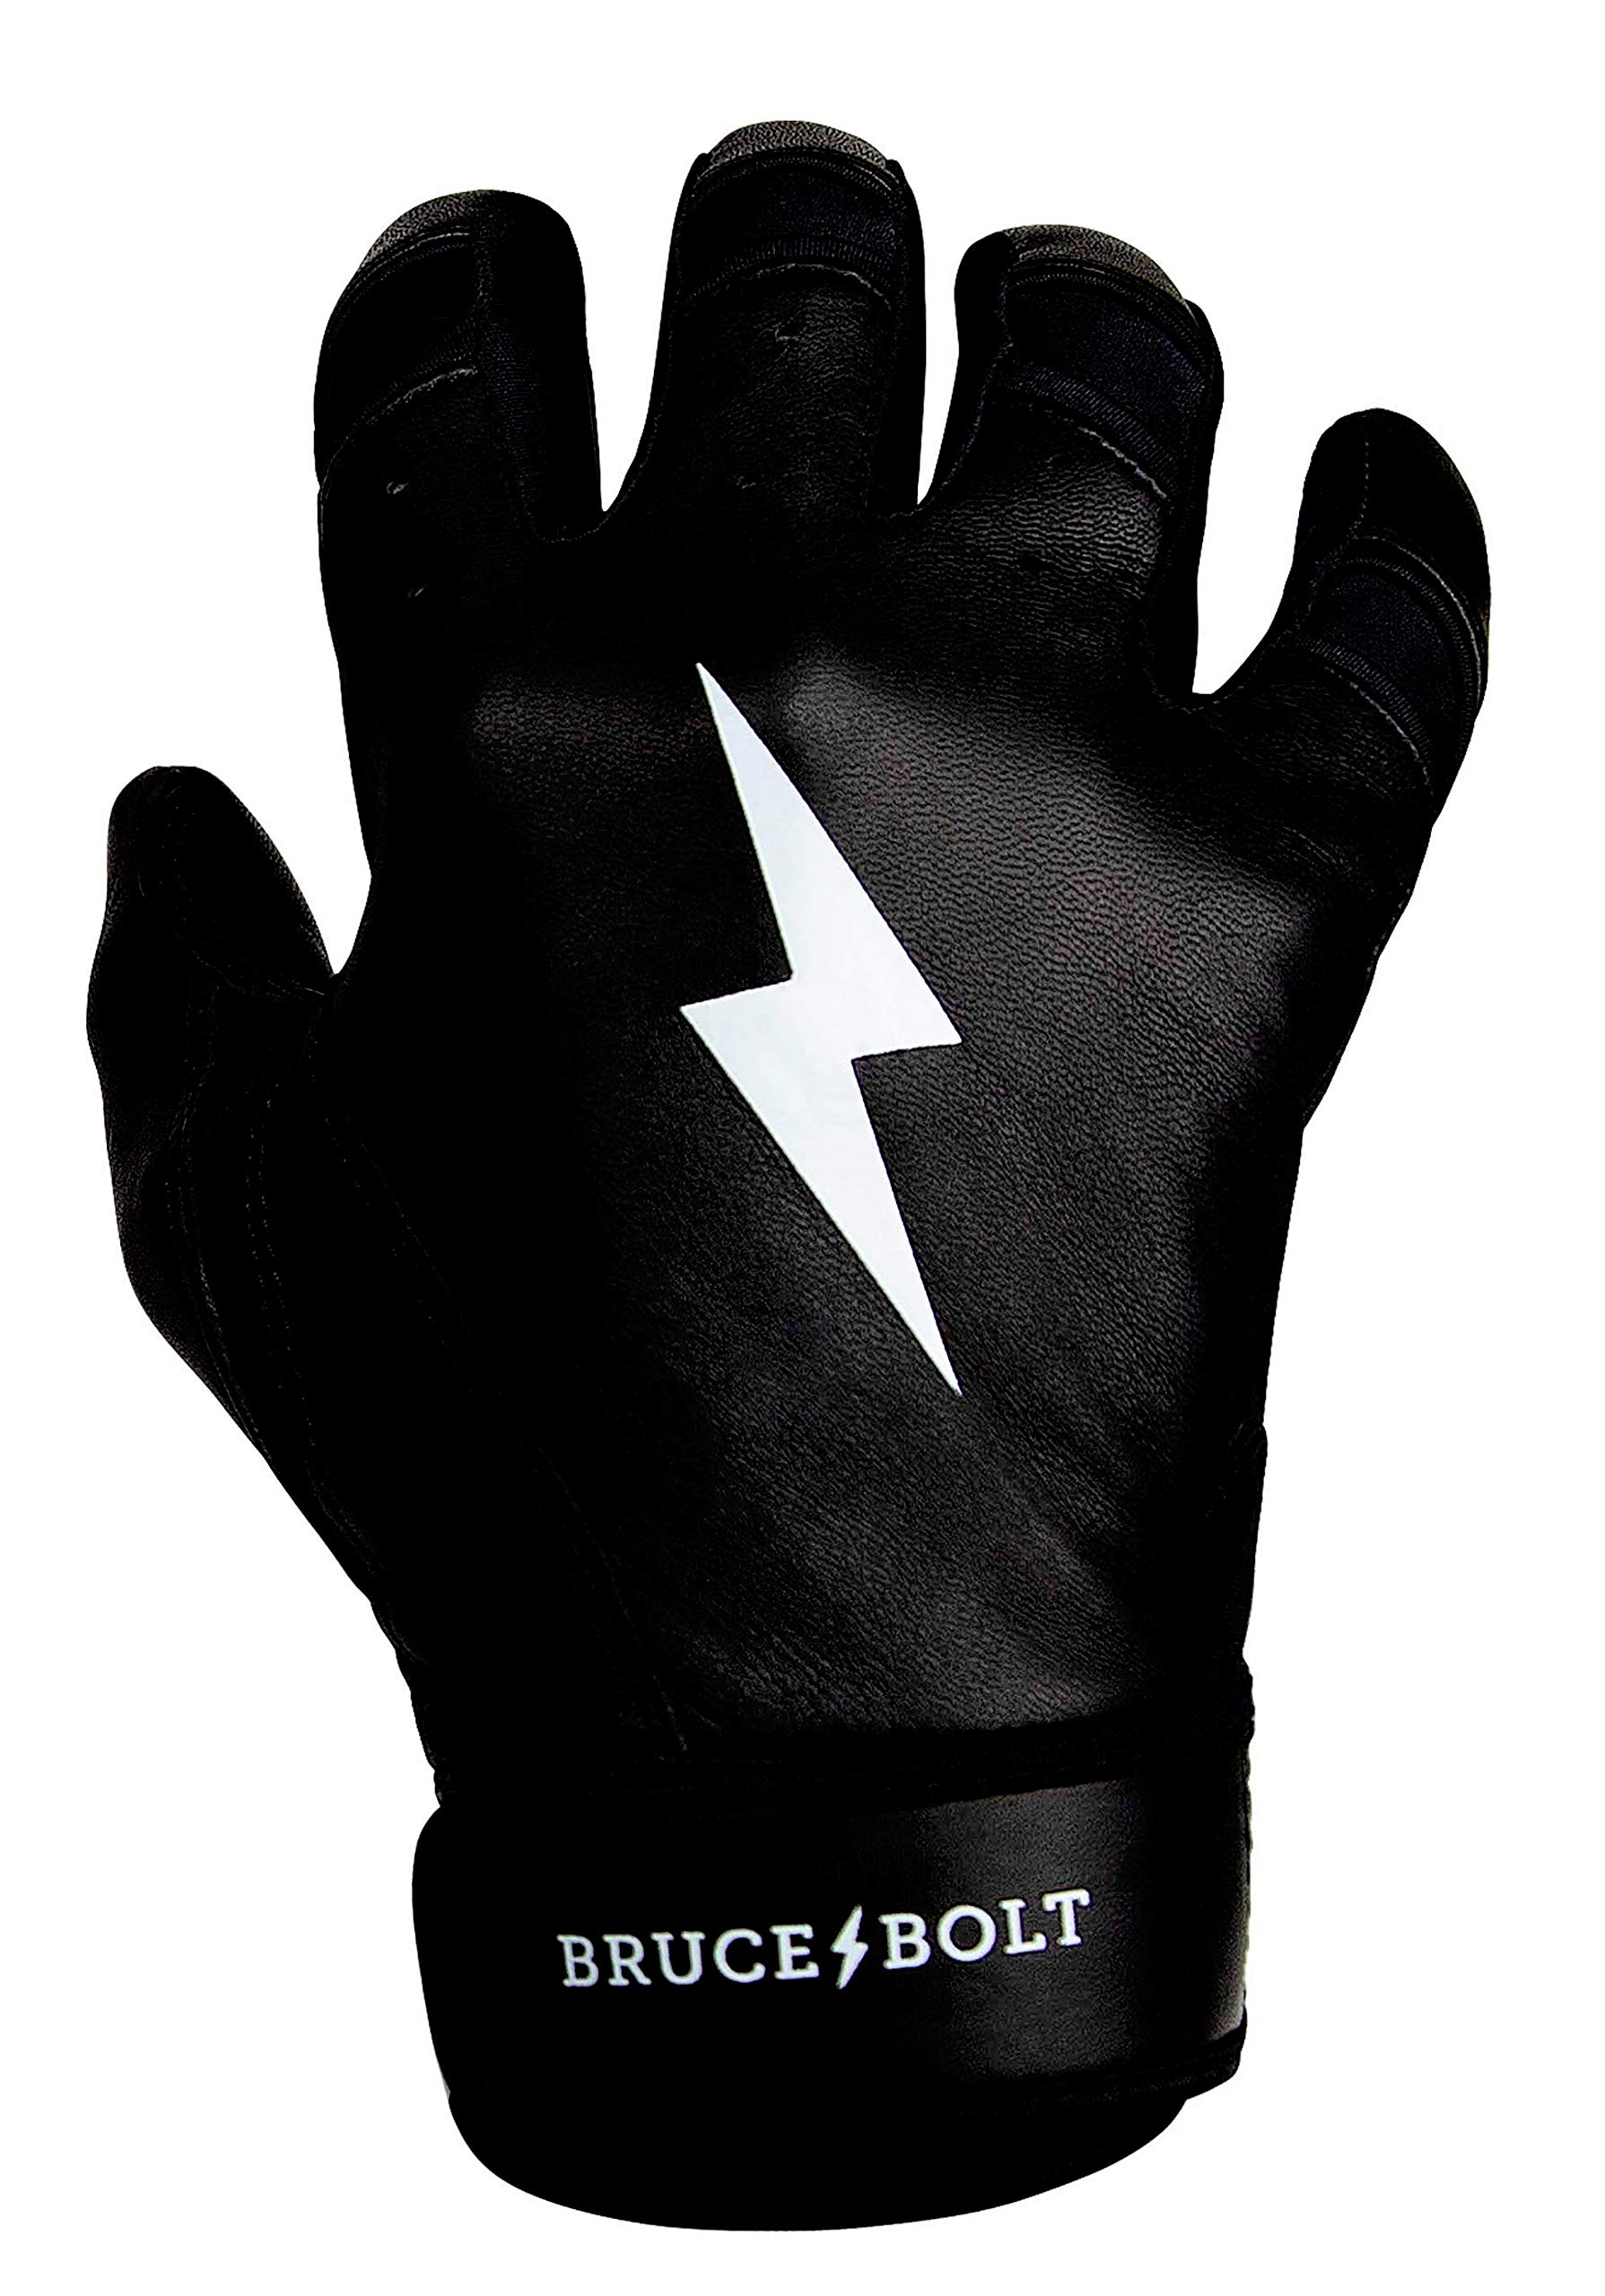 BRUCE+BOLT Premium Short Cuff Batting Gloves - Black XLarge SBXL